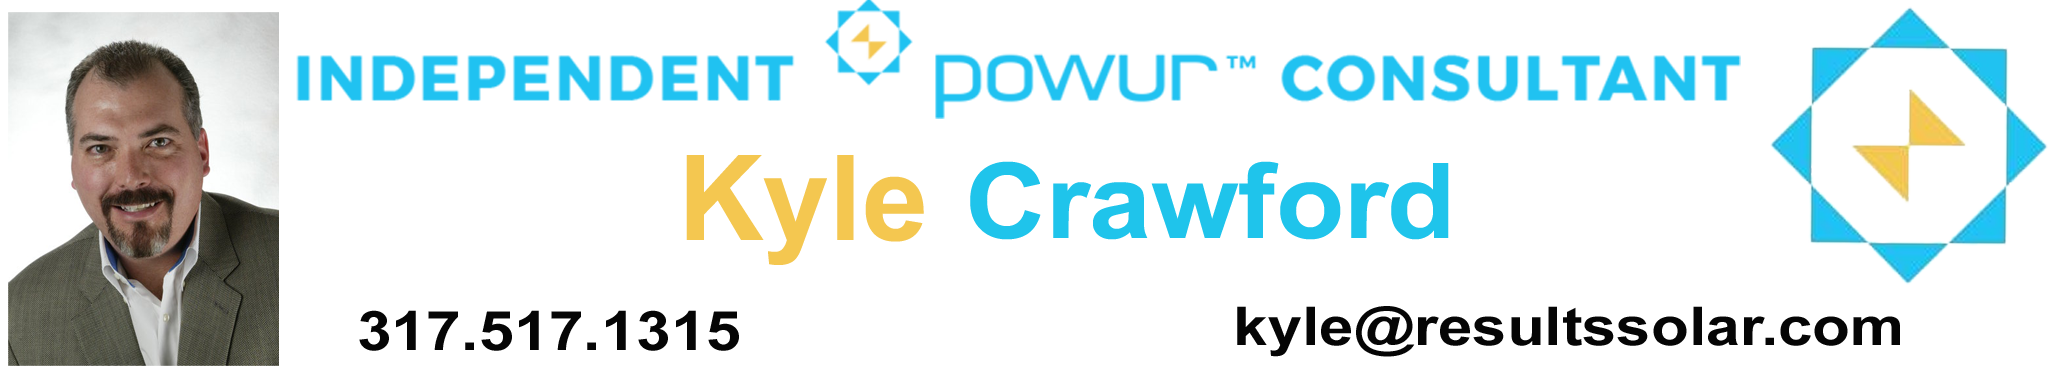 Independent POWUR consultant Kyle Crawford can help you easily decide if going SOLAR is right for you!